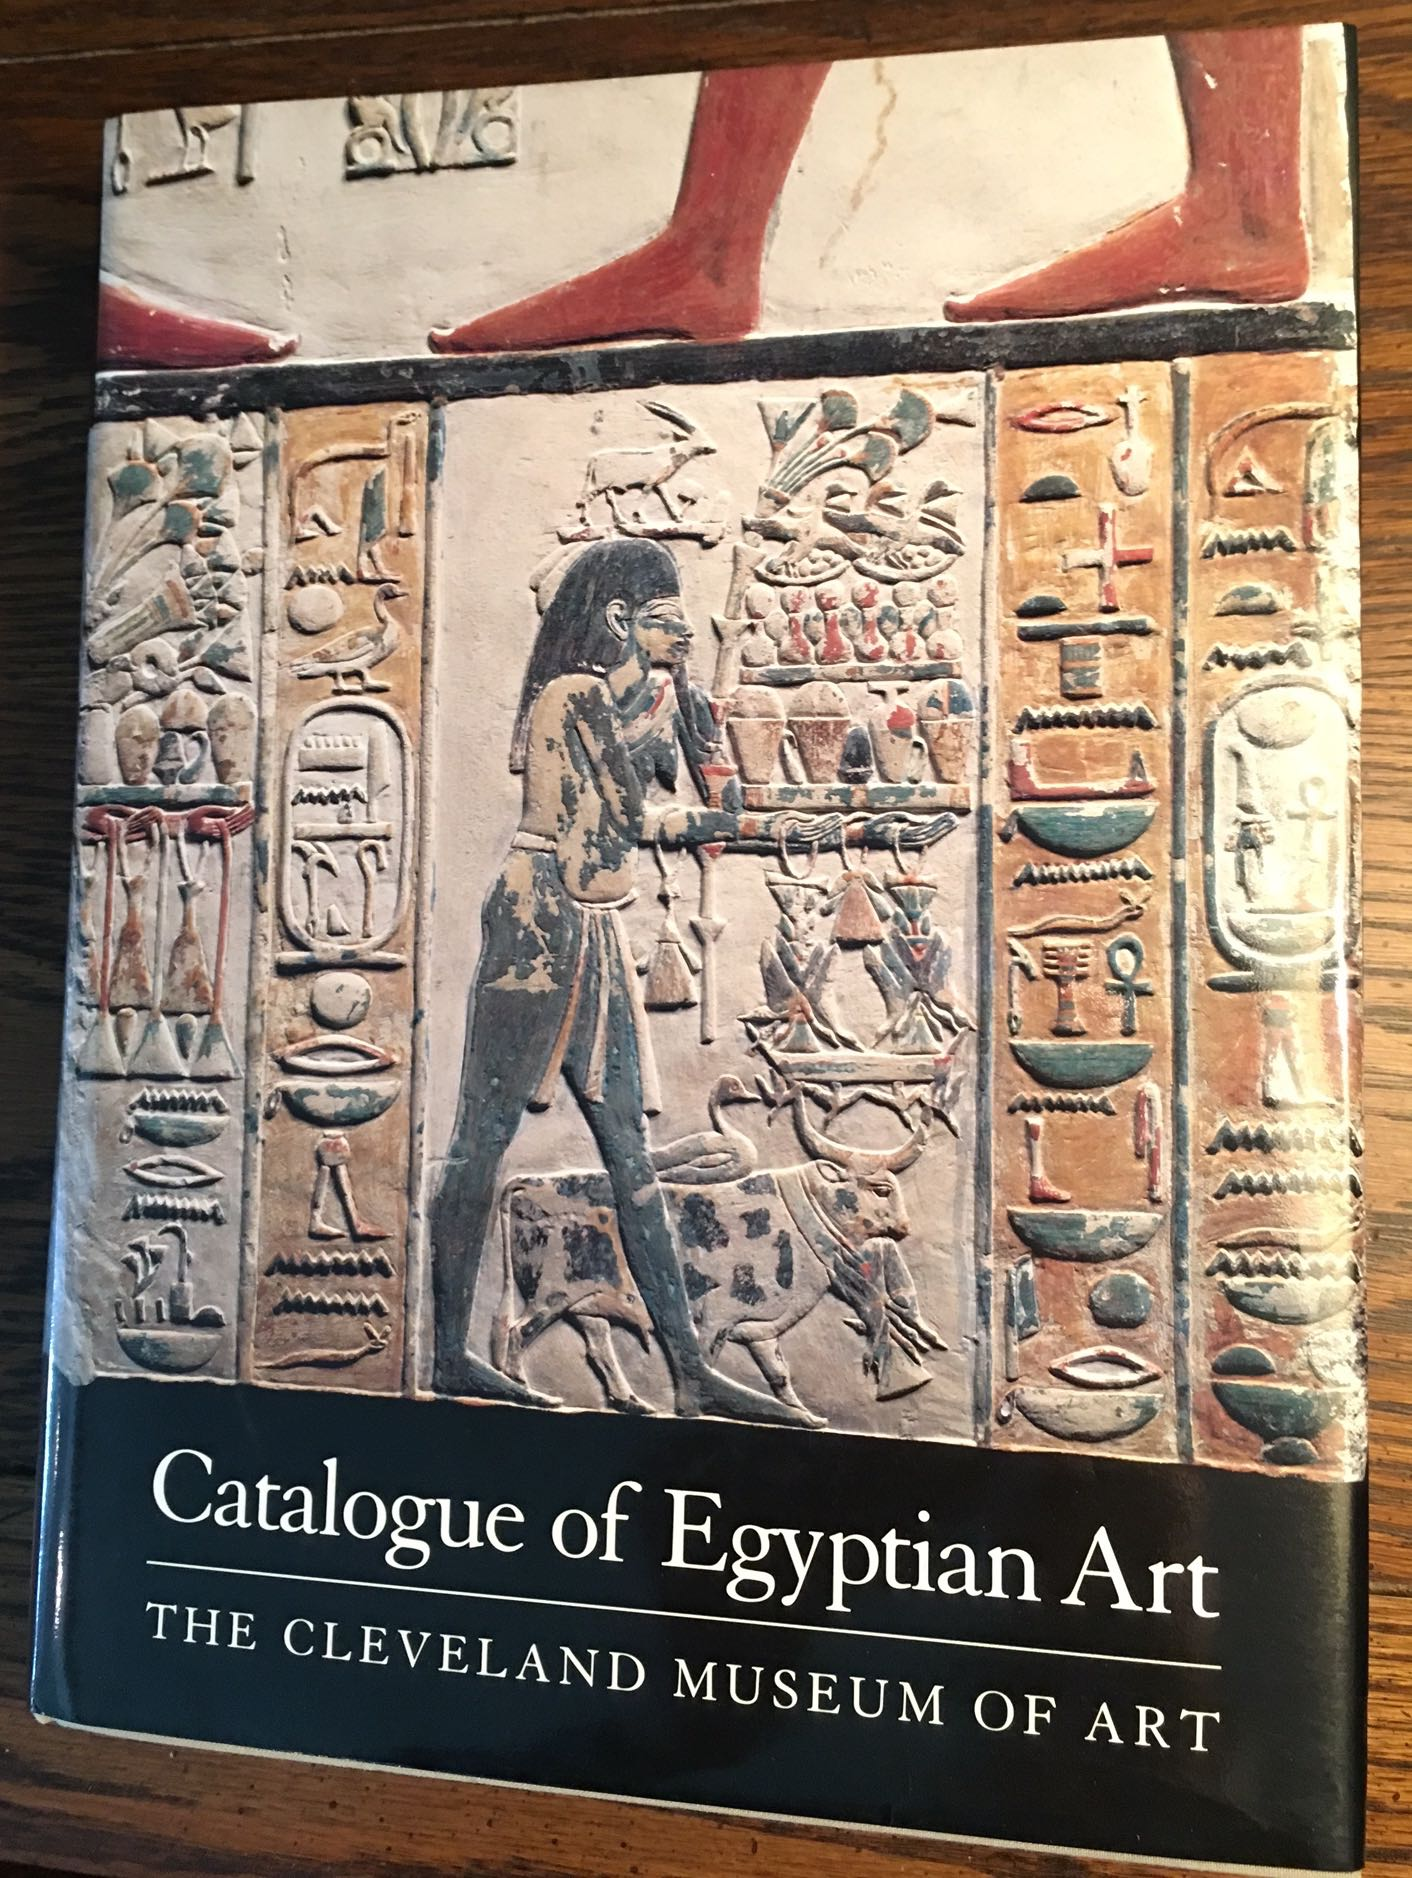 Cleveland Museum Of Art: Catalogue Of Egyptian Art. The Cleveland Museum Of Art